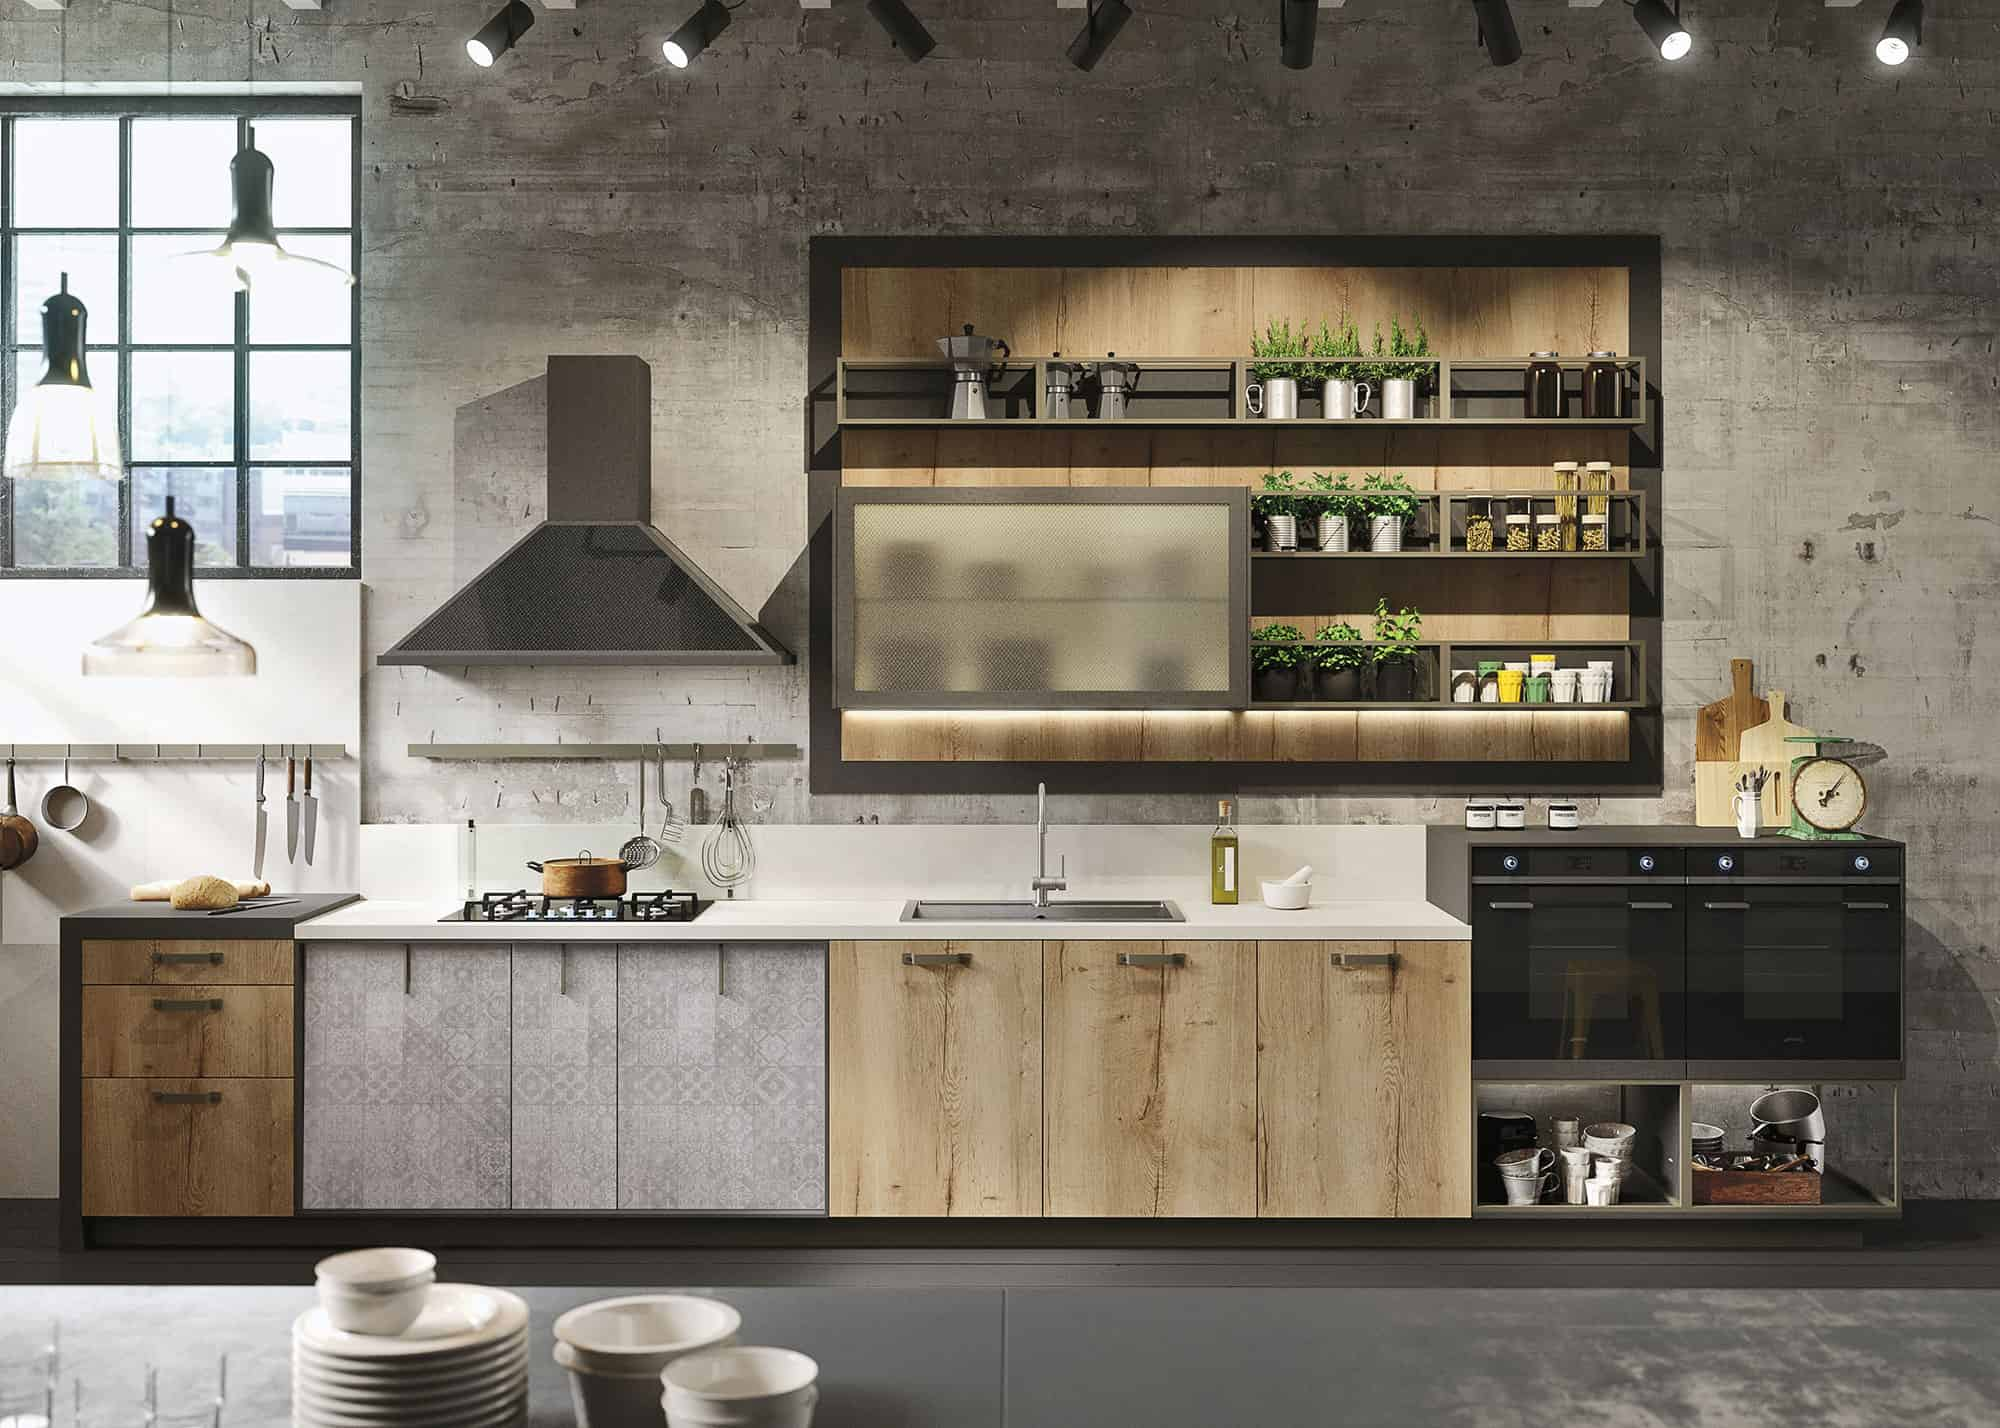 Uncategorized Urban Kitchen Design kitchen design for lofts 3 urban ideas from snaidero all of the loft kitchens come with graphic panels that can be used in conjunction wood look doors and drawers graphic